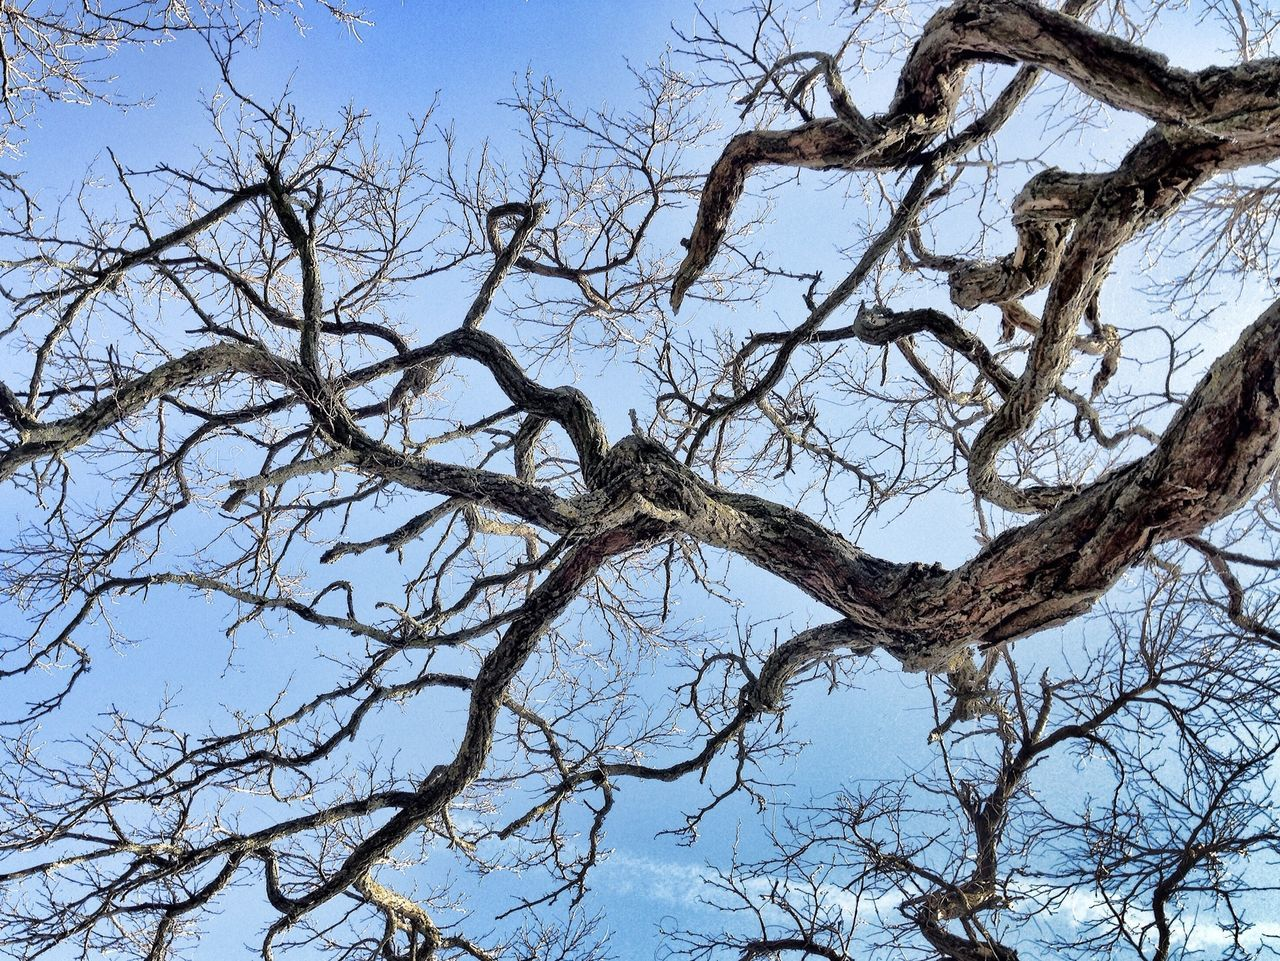 Low Angle View Of Bare Tree Branch Against Sky